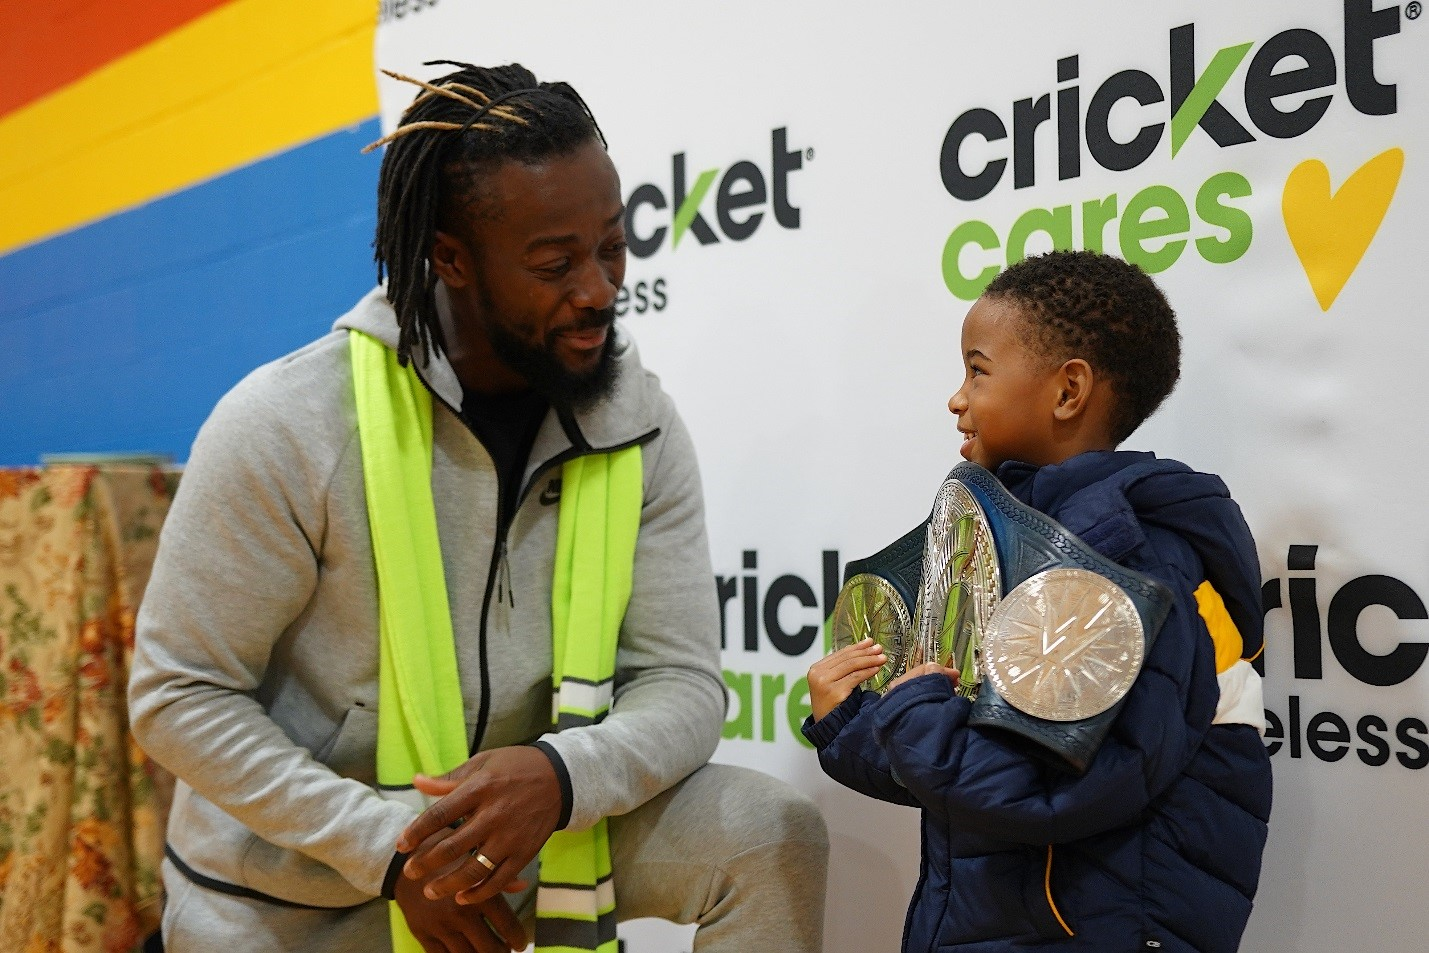 Cricket Wireless and WWE Superstar Kofi Kingston brought smiles and dinners to 150 families in Chicago for Thanksgiving.